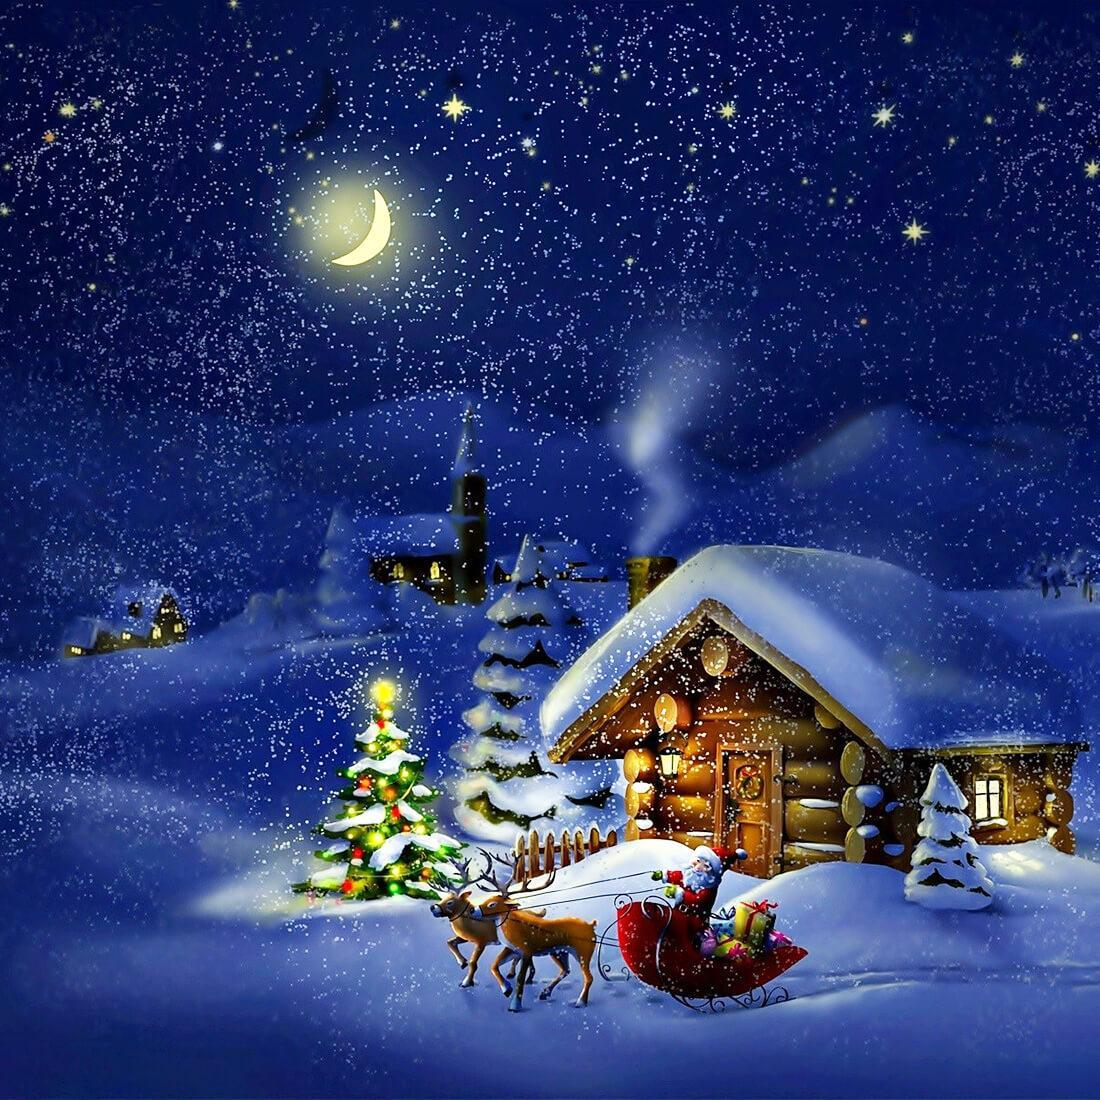 Immagini Natalizie Per Desktop Animate.Notte Di Natale Sfondi Animati For Android Apk Download